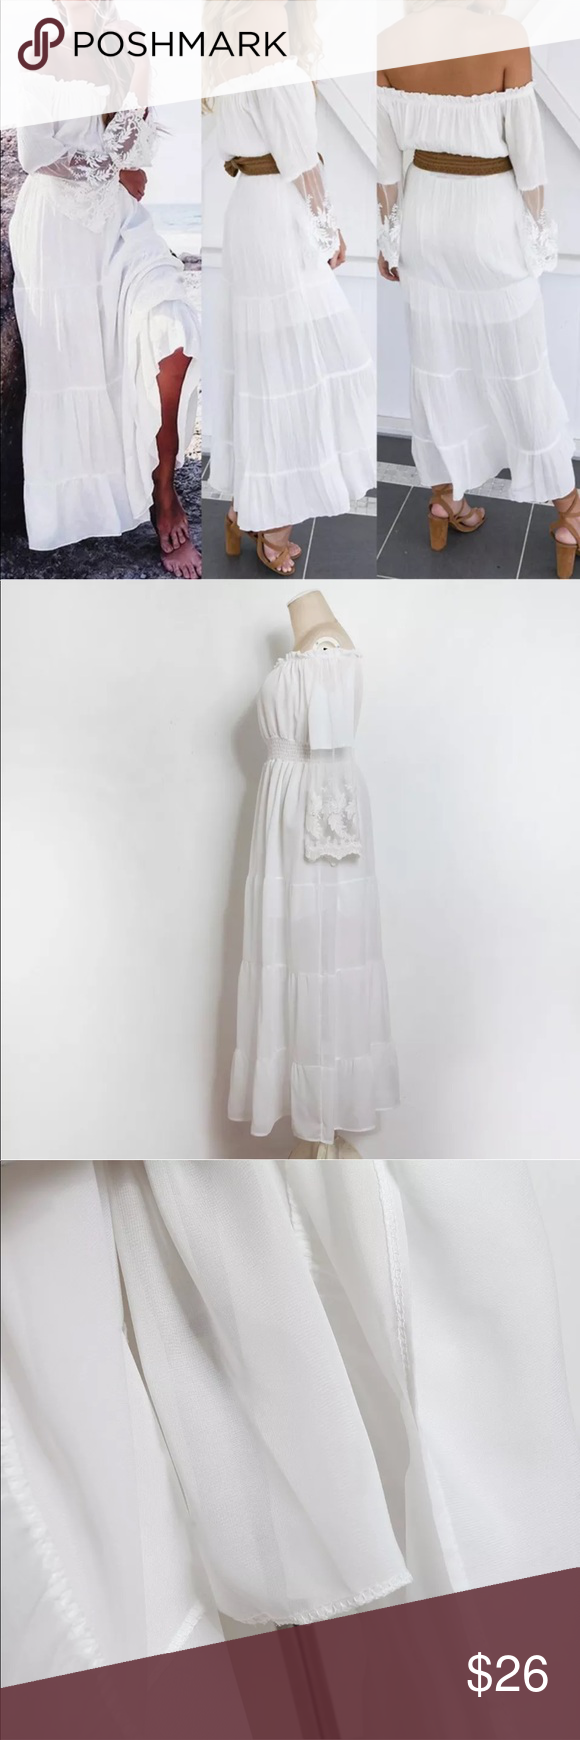 Women maxi white lace beach vacation comfy dress boutique in